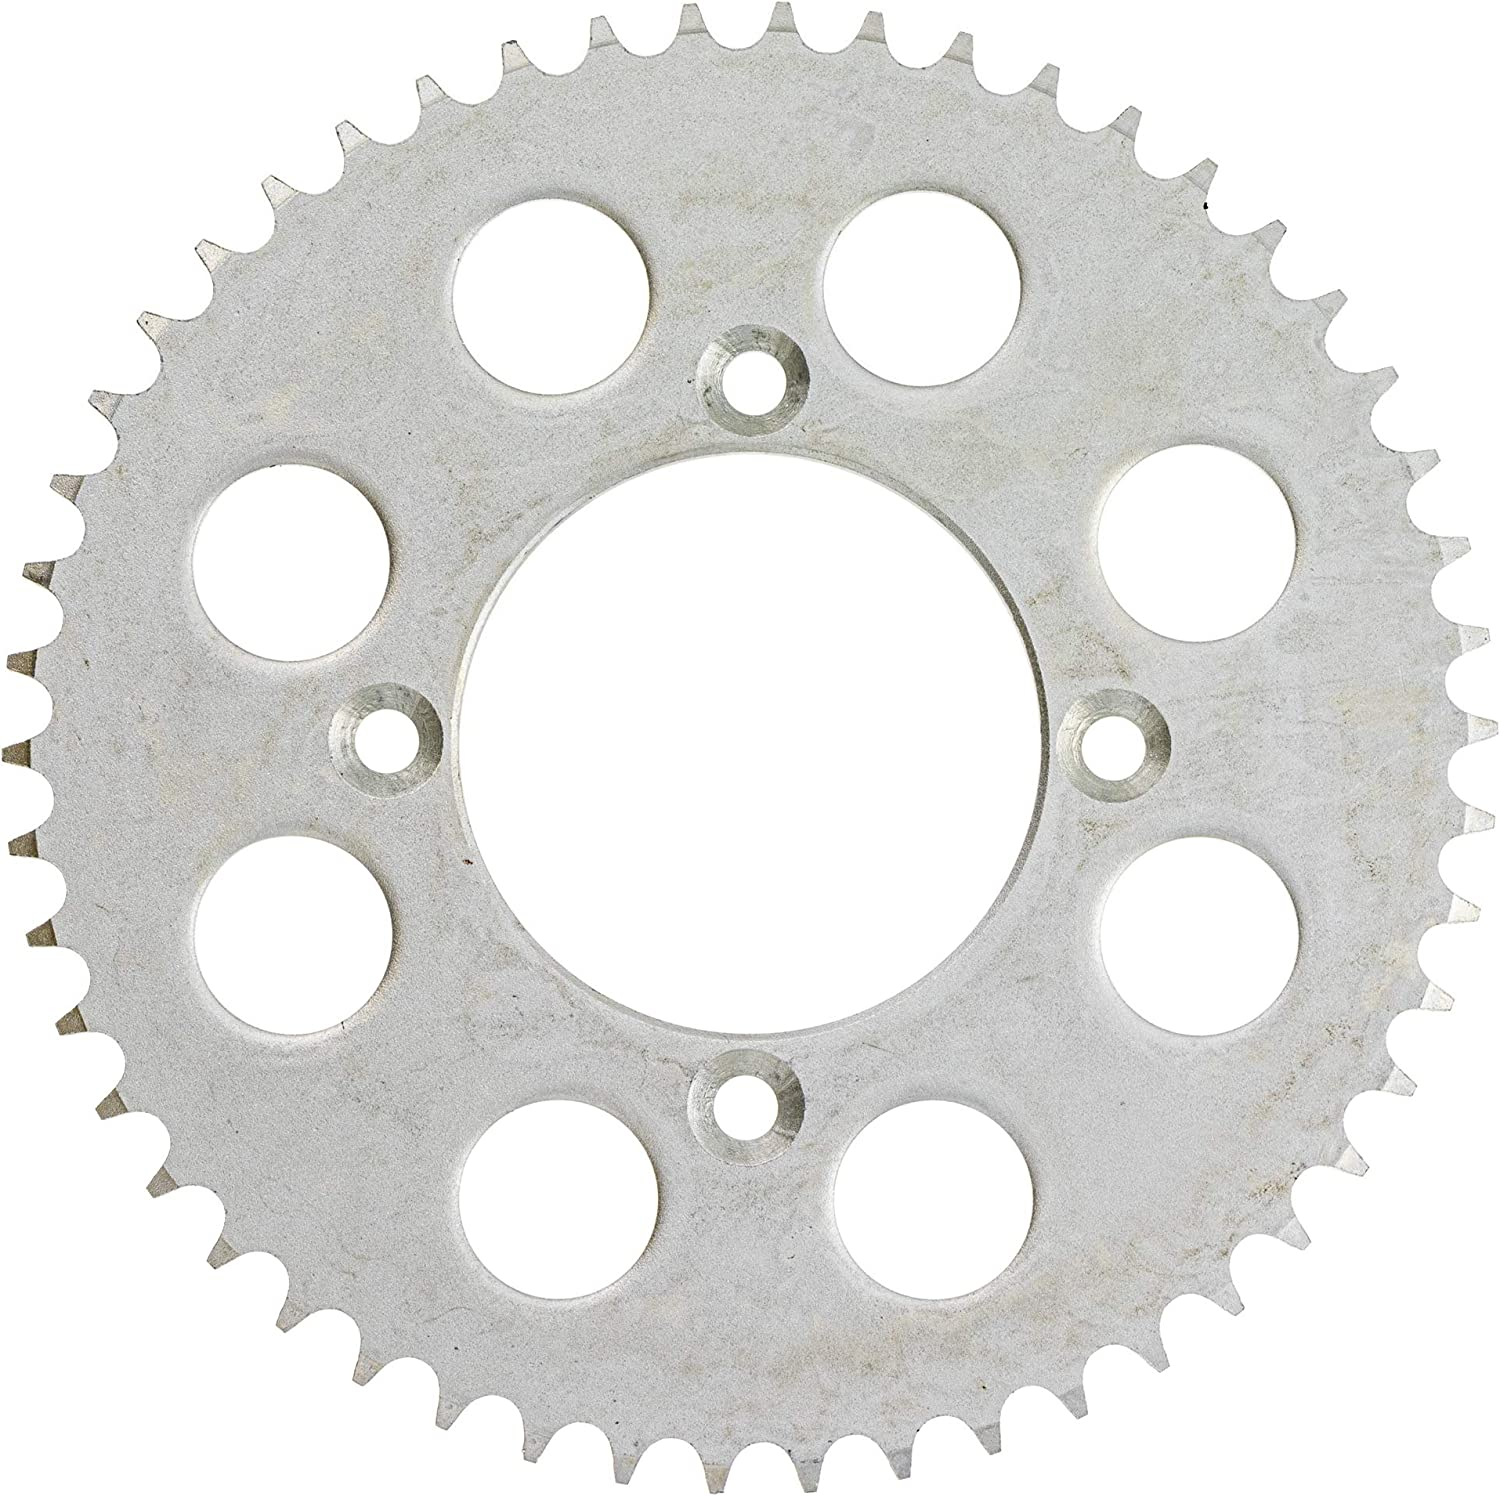 NICHE 428 Pitch 50 Tooth Rear Drive Sprocket For Honda 1985-2003 XR100R 2004-2013 CRF100F 41201-KN4-000